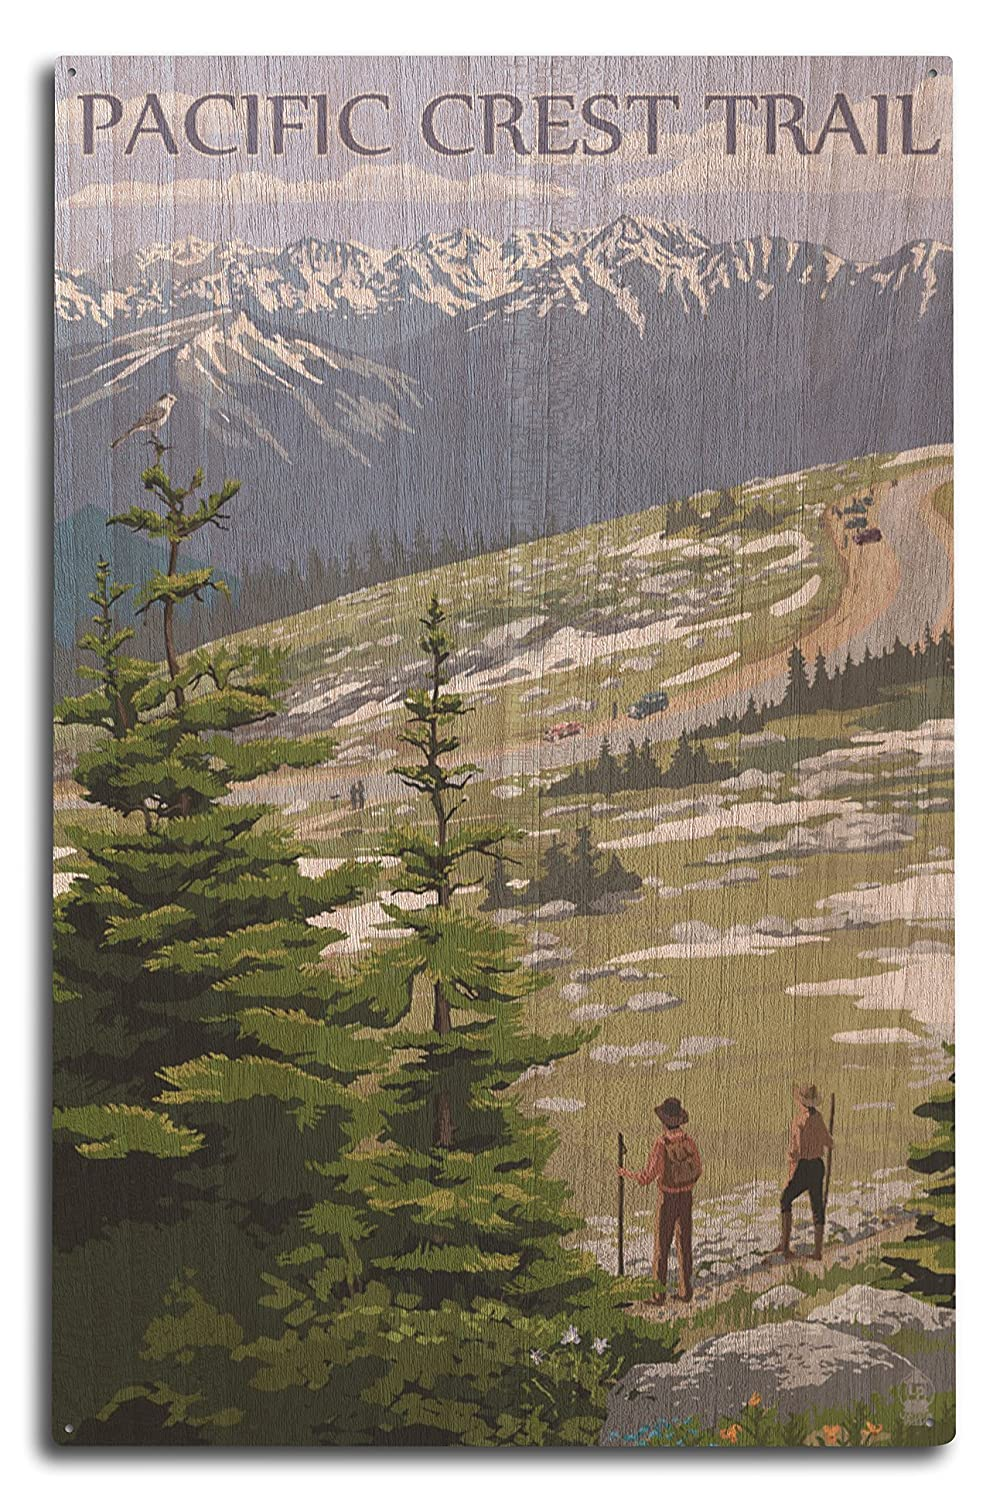 Pacific Crest Trail and Hikers (10x15 Wood Wall Sign, Wall Decor Ready to Hang)